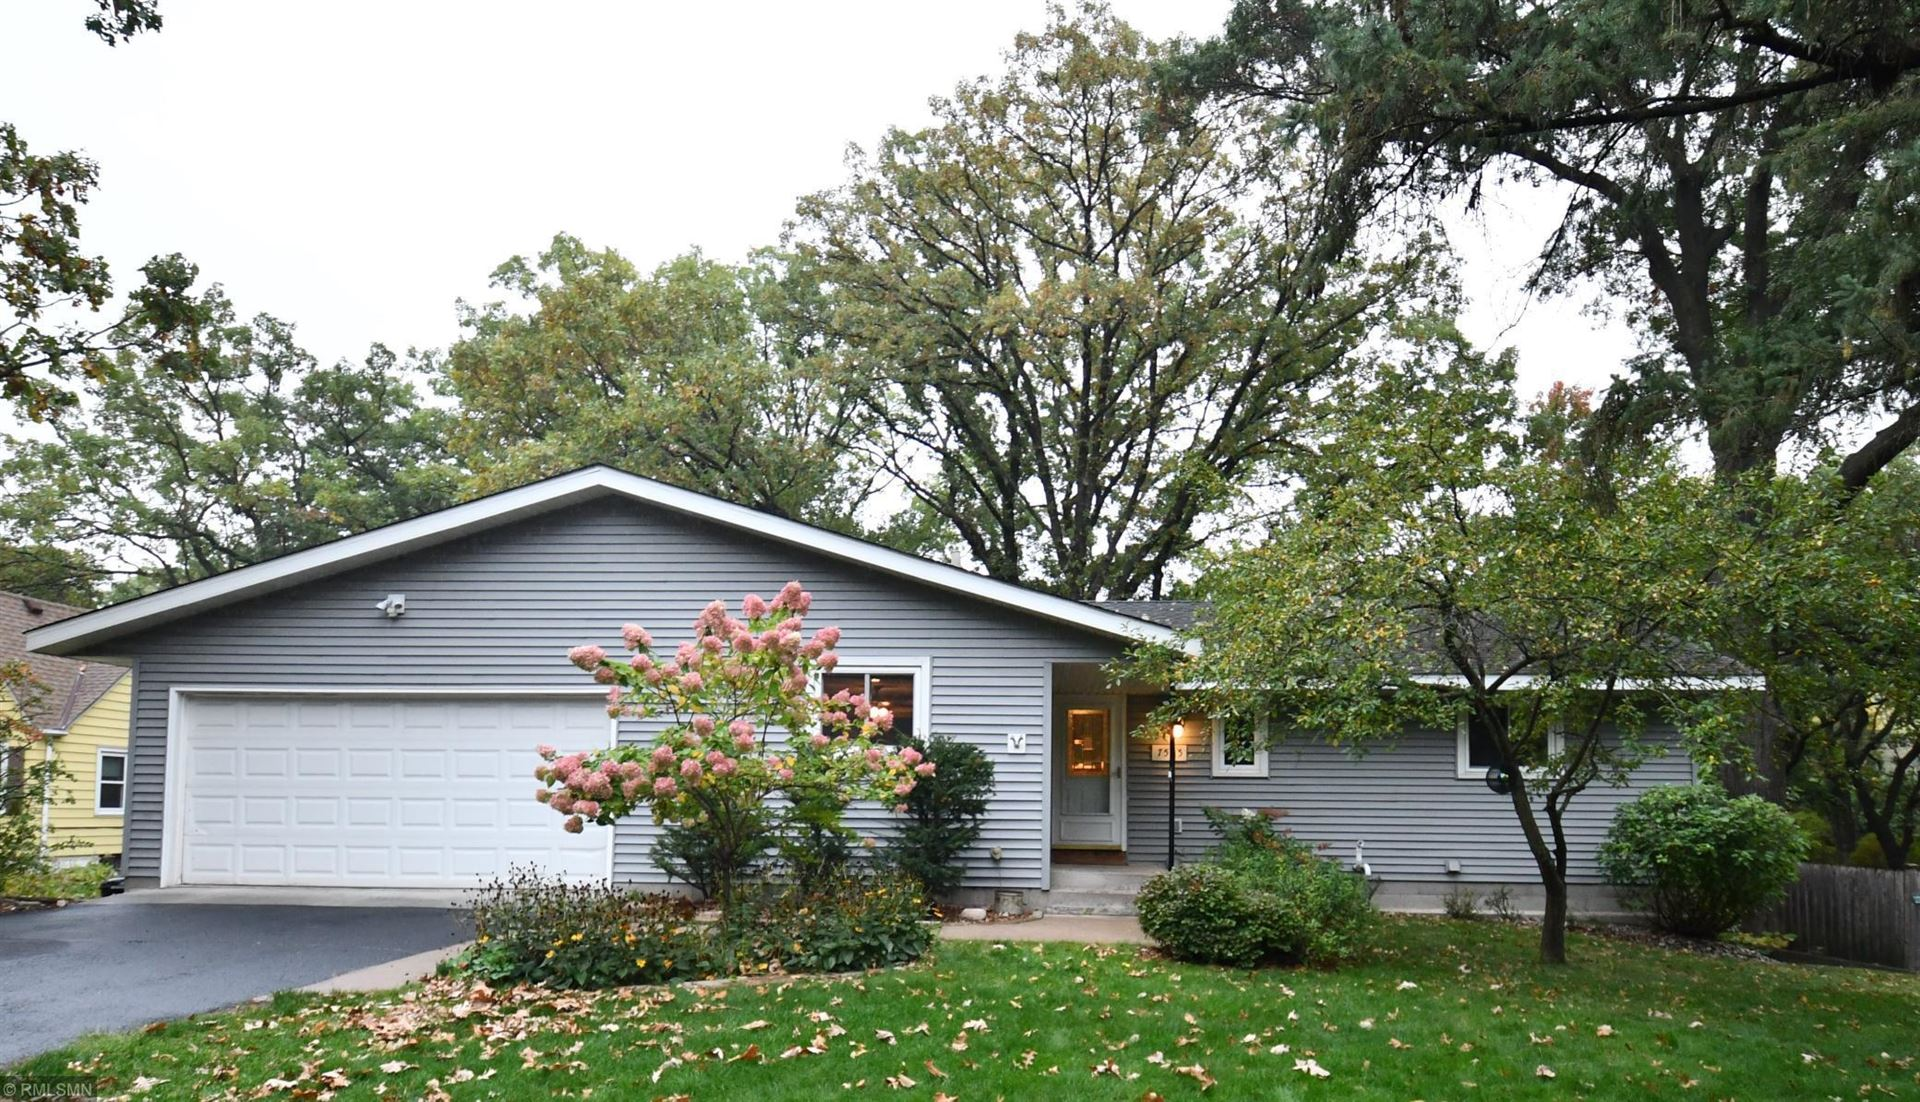 7565 Knollwood Drive, Mounds View, MN 55112 - MLS#: 5665182